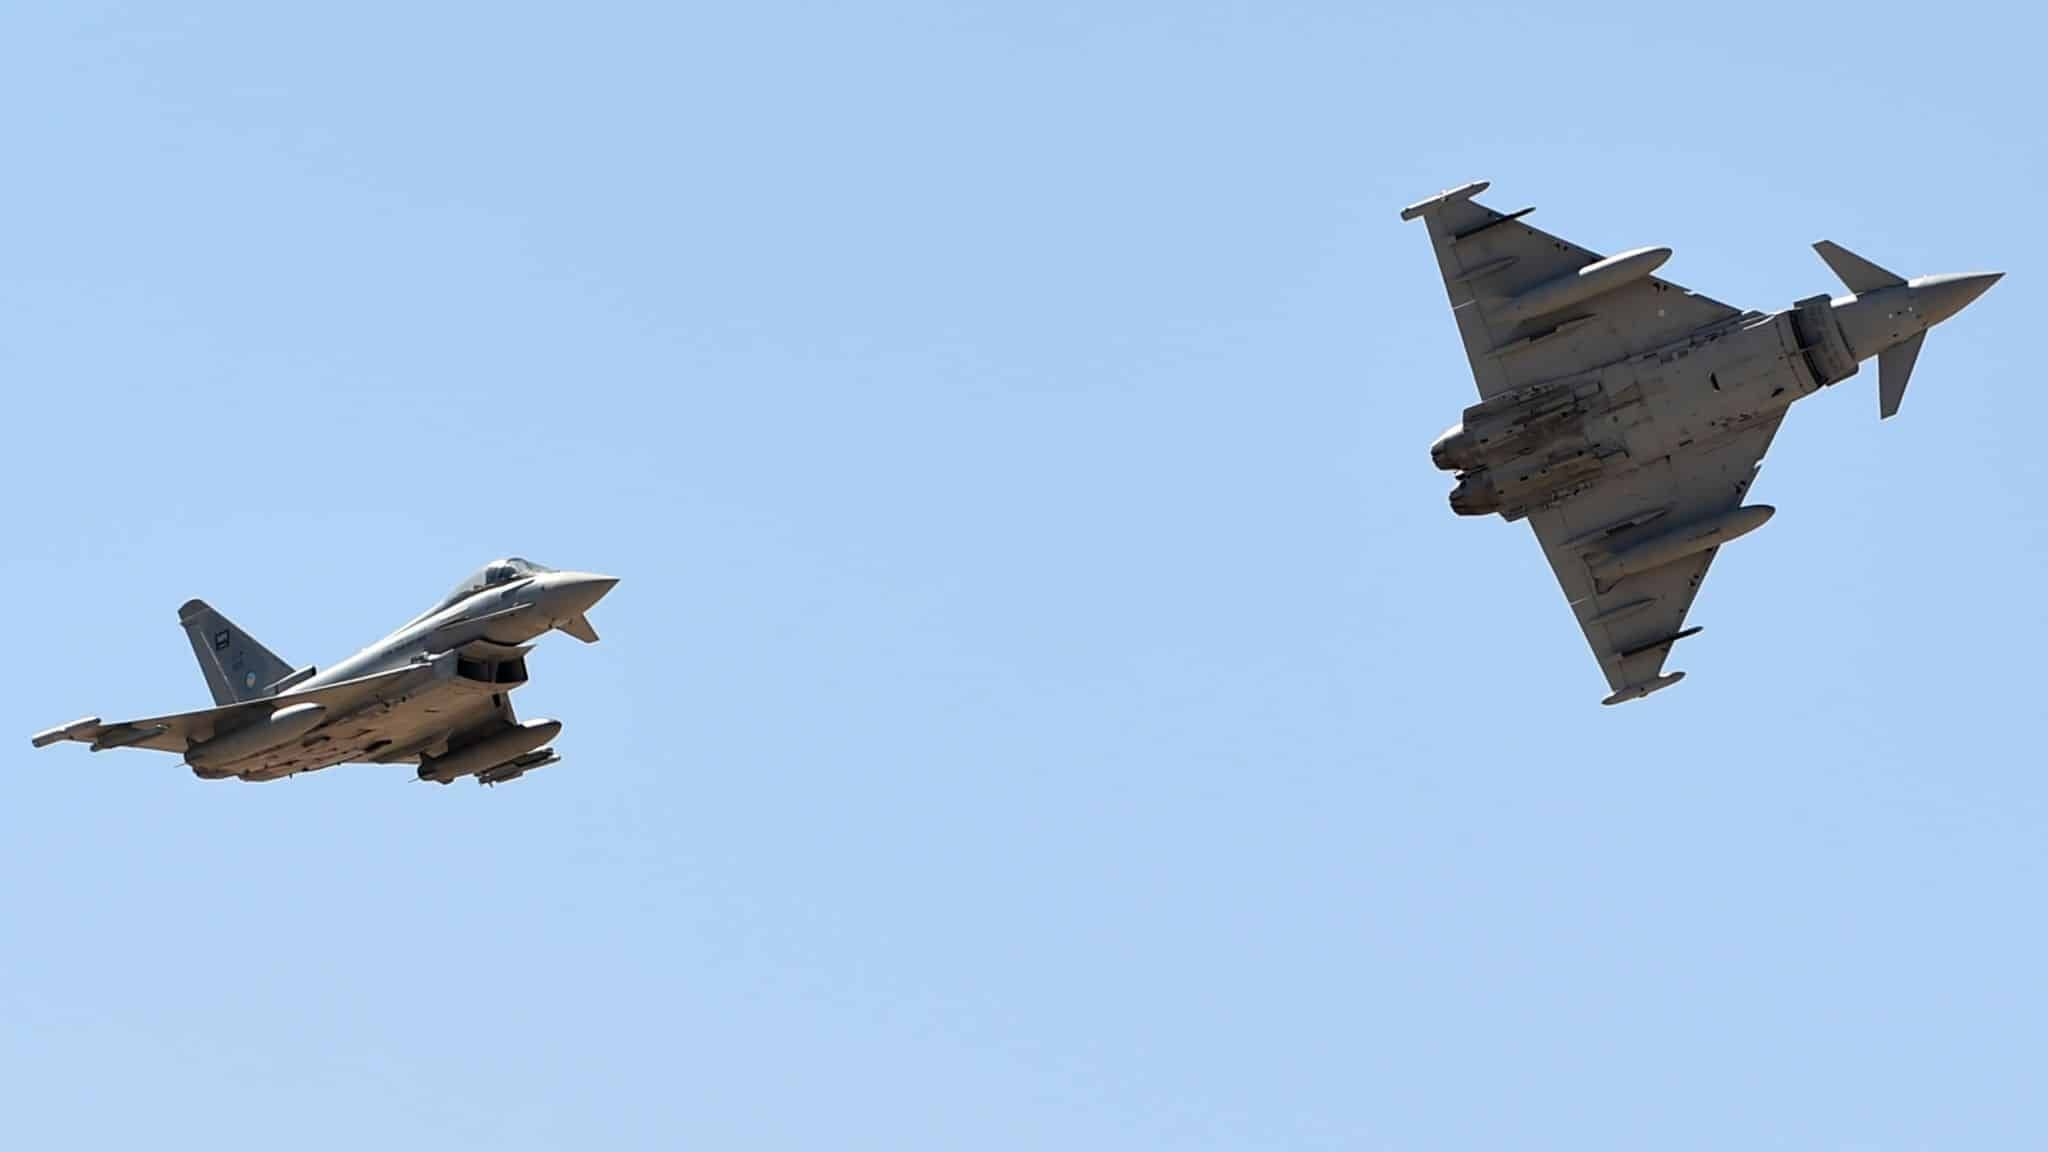 German Lawmakers Approve Funds For New Euro Fighter Jet Eurofighter Fighterjets France Germany Fighter Jets Fighter Military